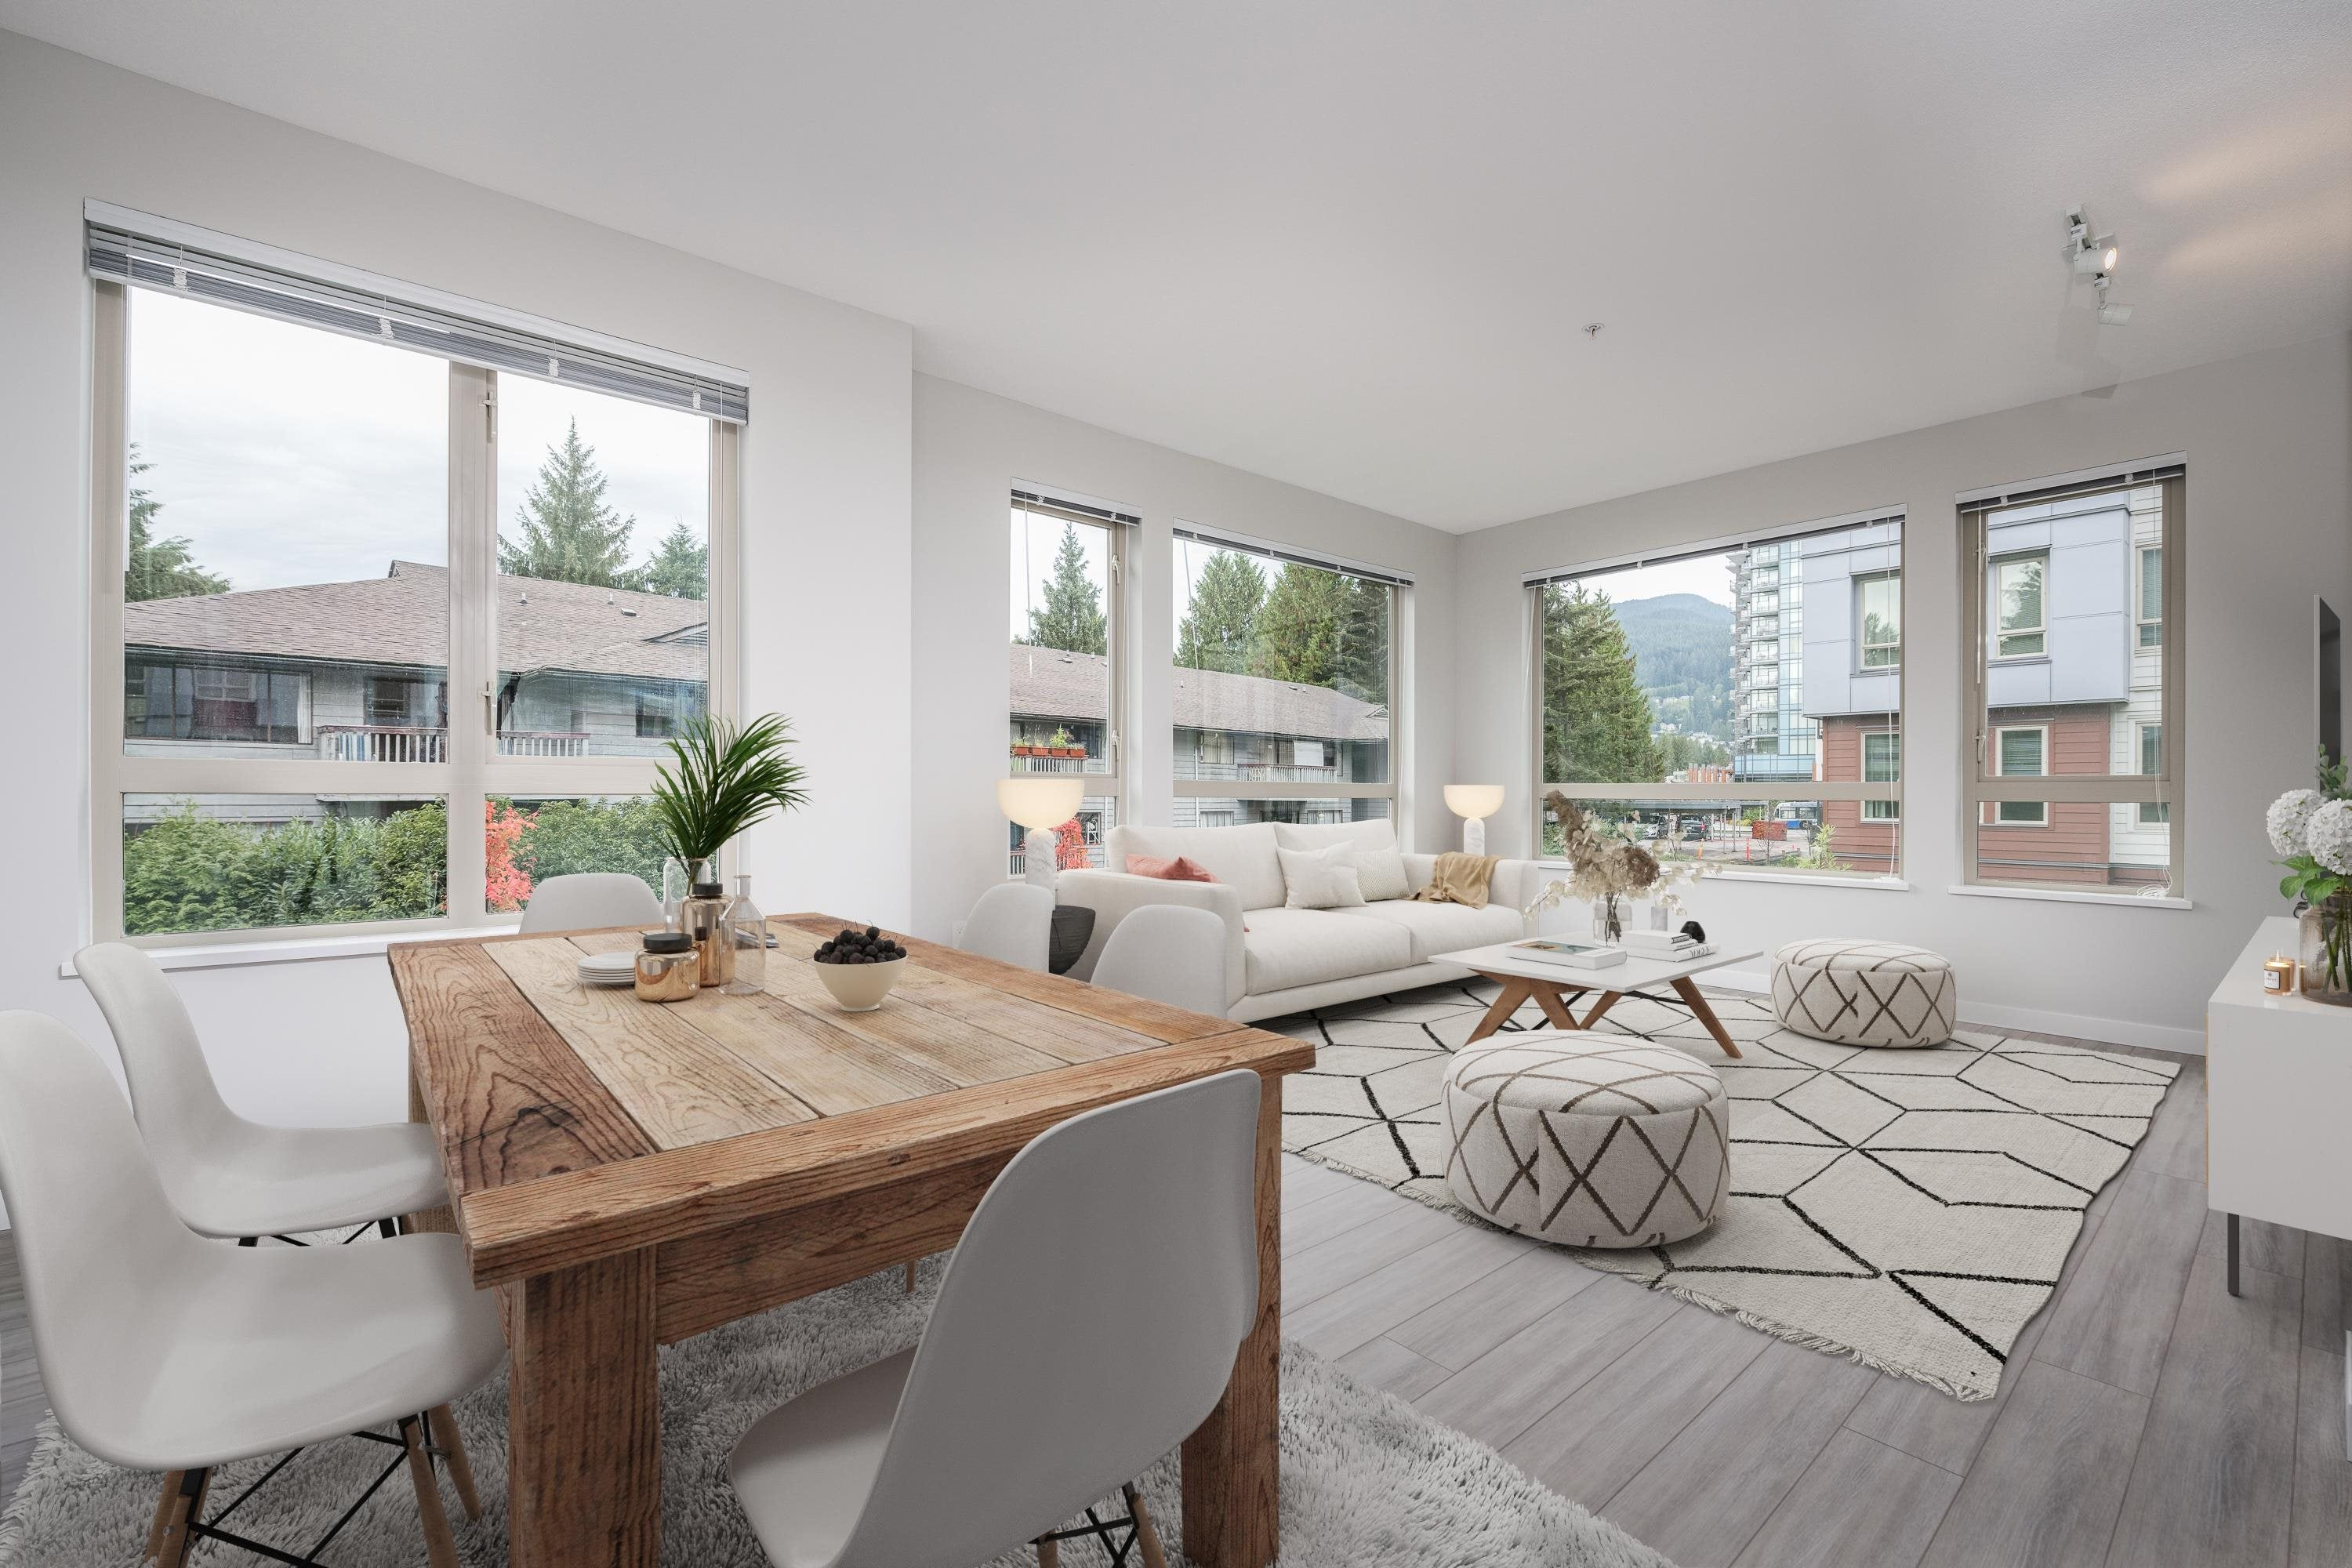 219 2651 LIBRARY LANE - Lynn Valley Apartment/Condo for sale, 2 Bedrooms (R2623232) - #3